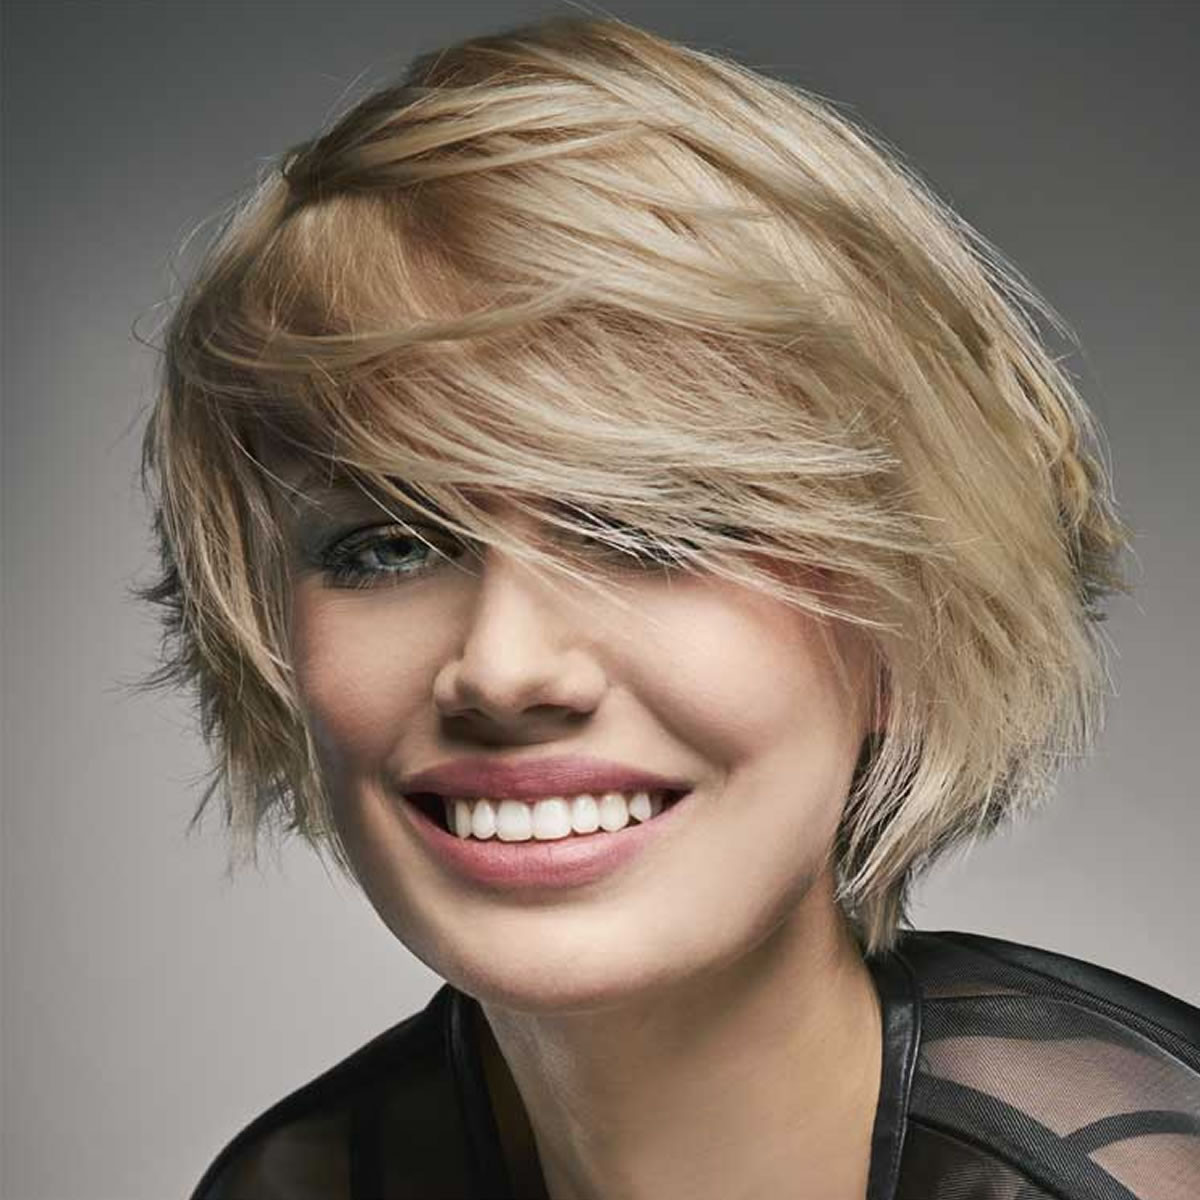 Best ideas about Photos Of Bob Haircuts . Save or Pin The Best 30 Short Bob Haircuts – 2018 Short Hairstyles for Now.